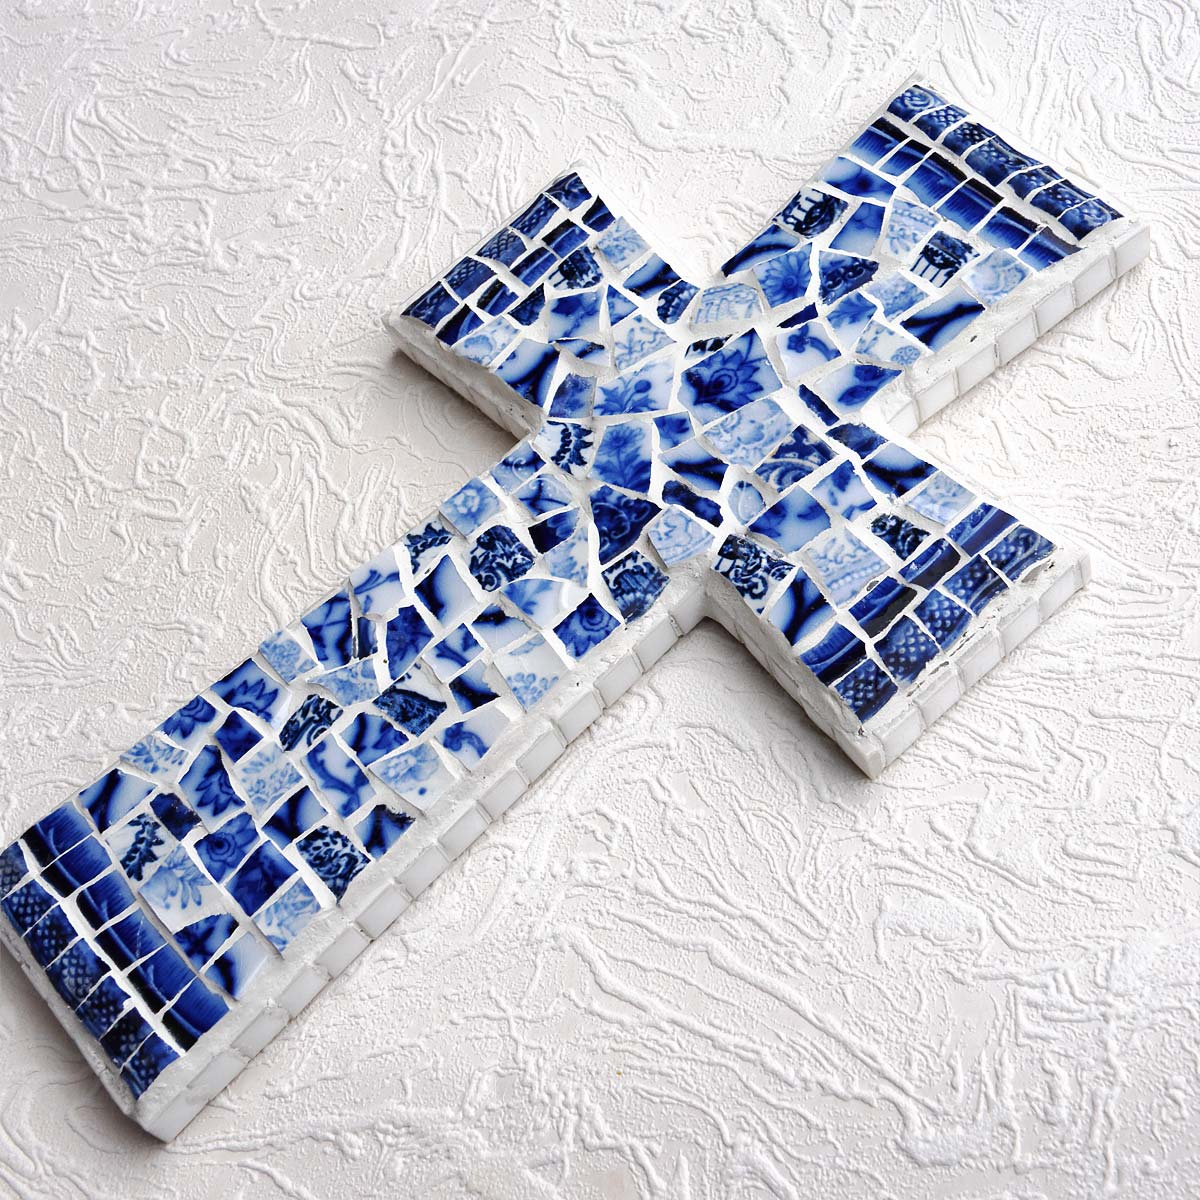 CROSS MOSAIC FLOW BLUE MOSAIC CROSS